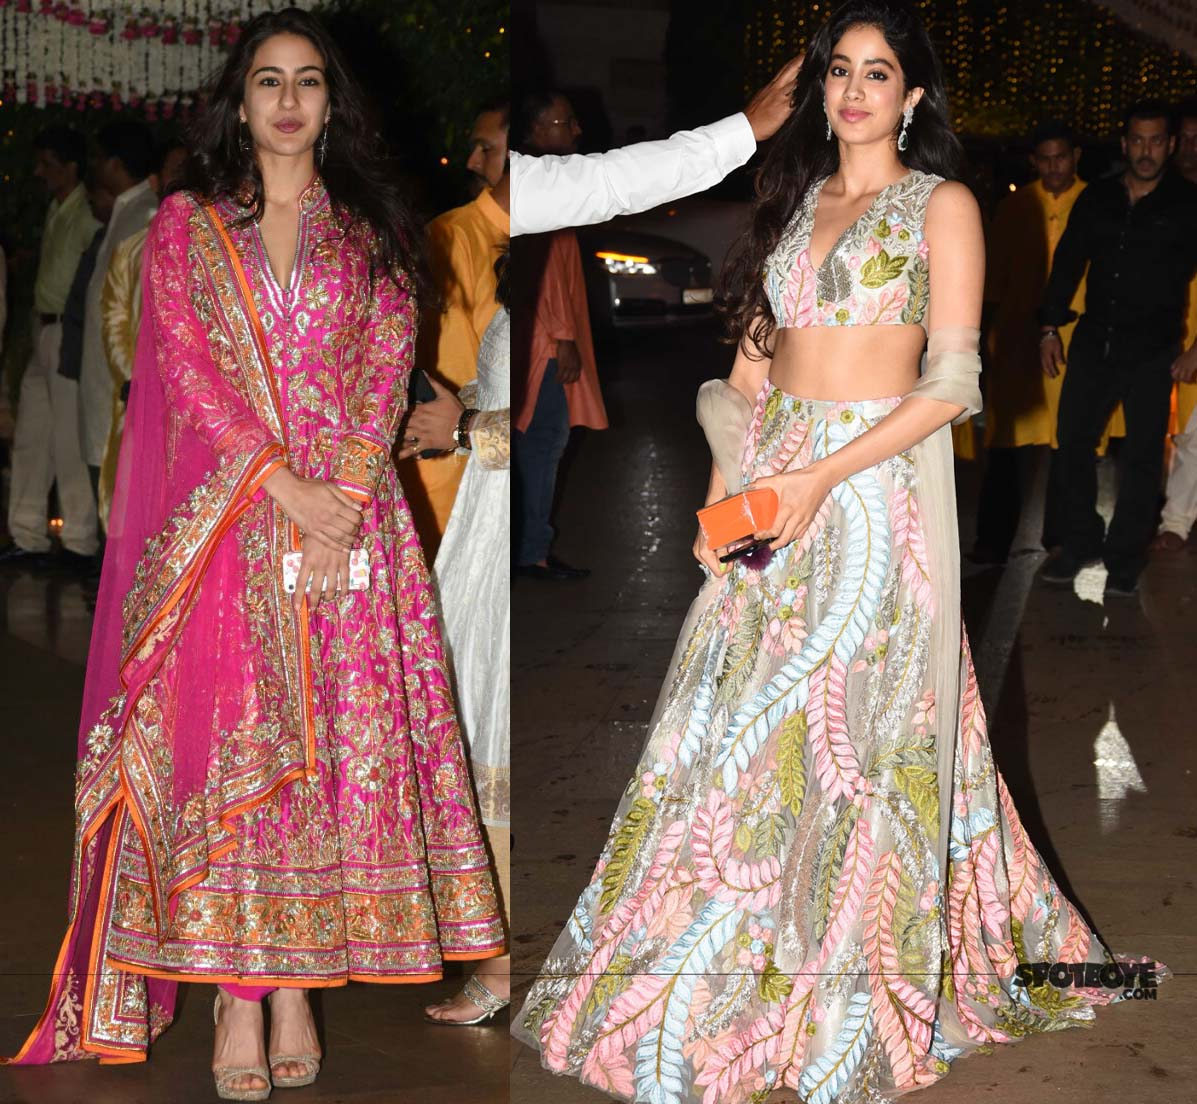 sara ali khan and jhanvi kapoor at ambani ganpati bash